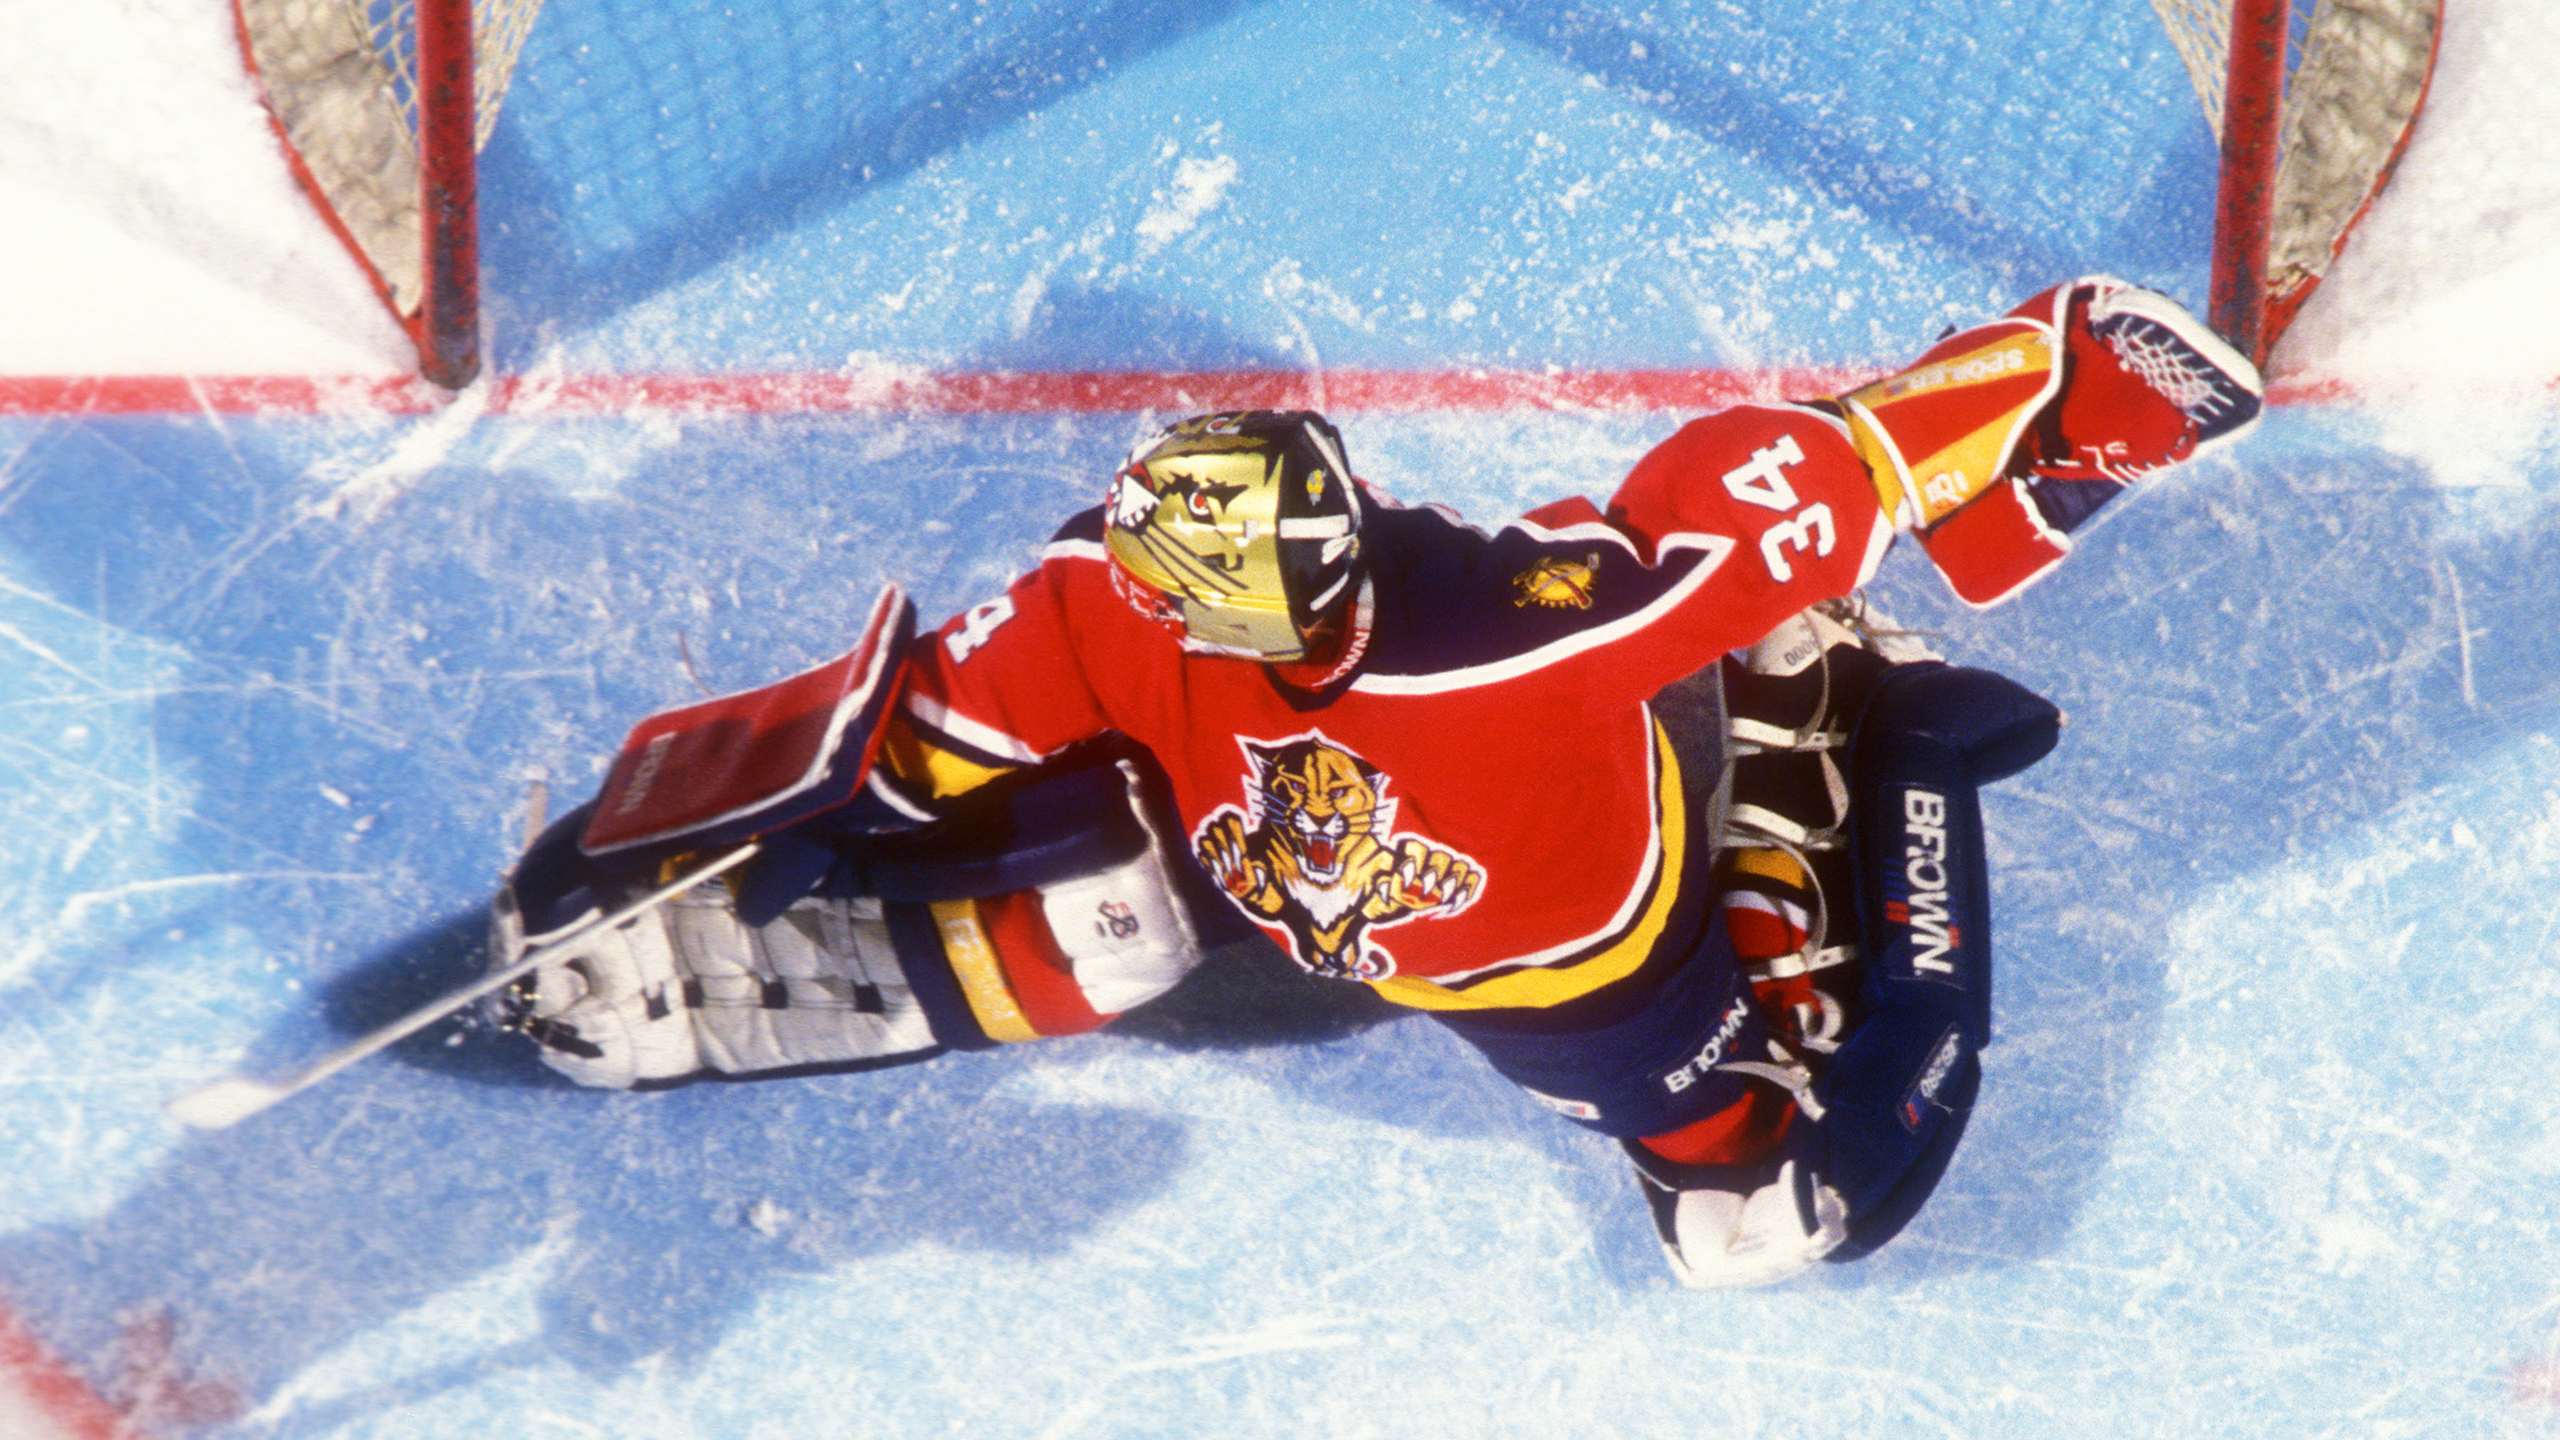 Vanbiesbrouck_john_big_read